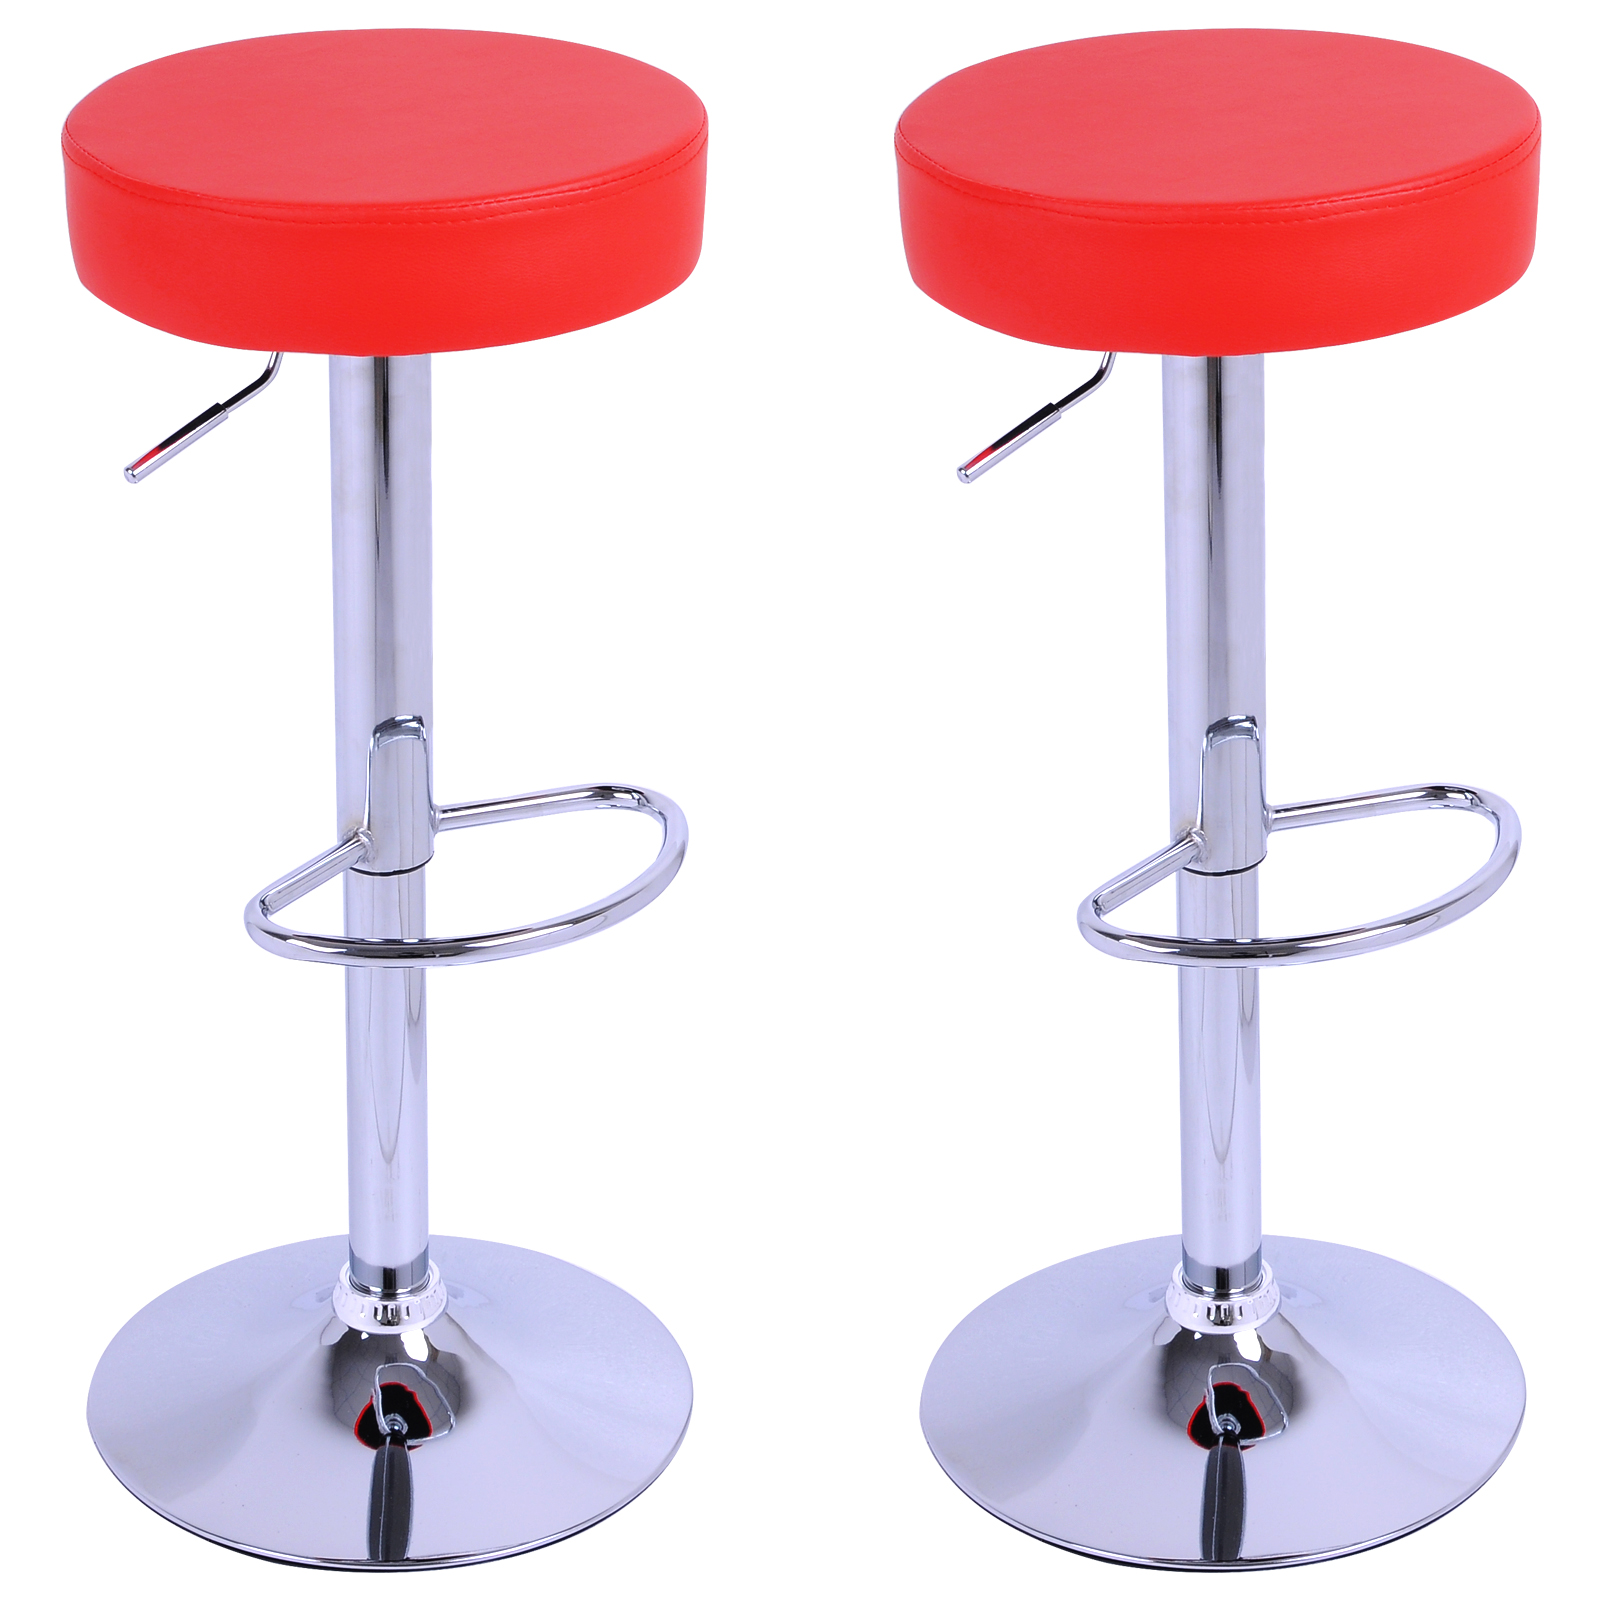 Bar Stools Set Of 2 Breakfast Kitchen Swivel Stool Chairs